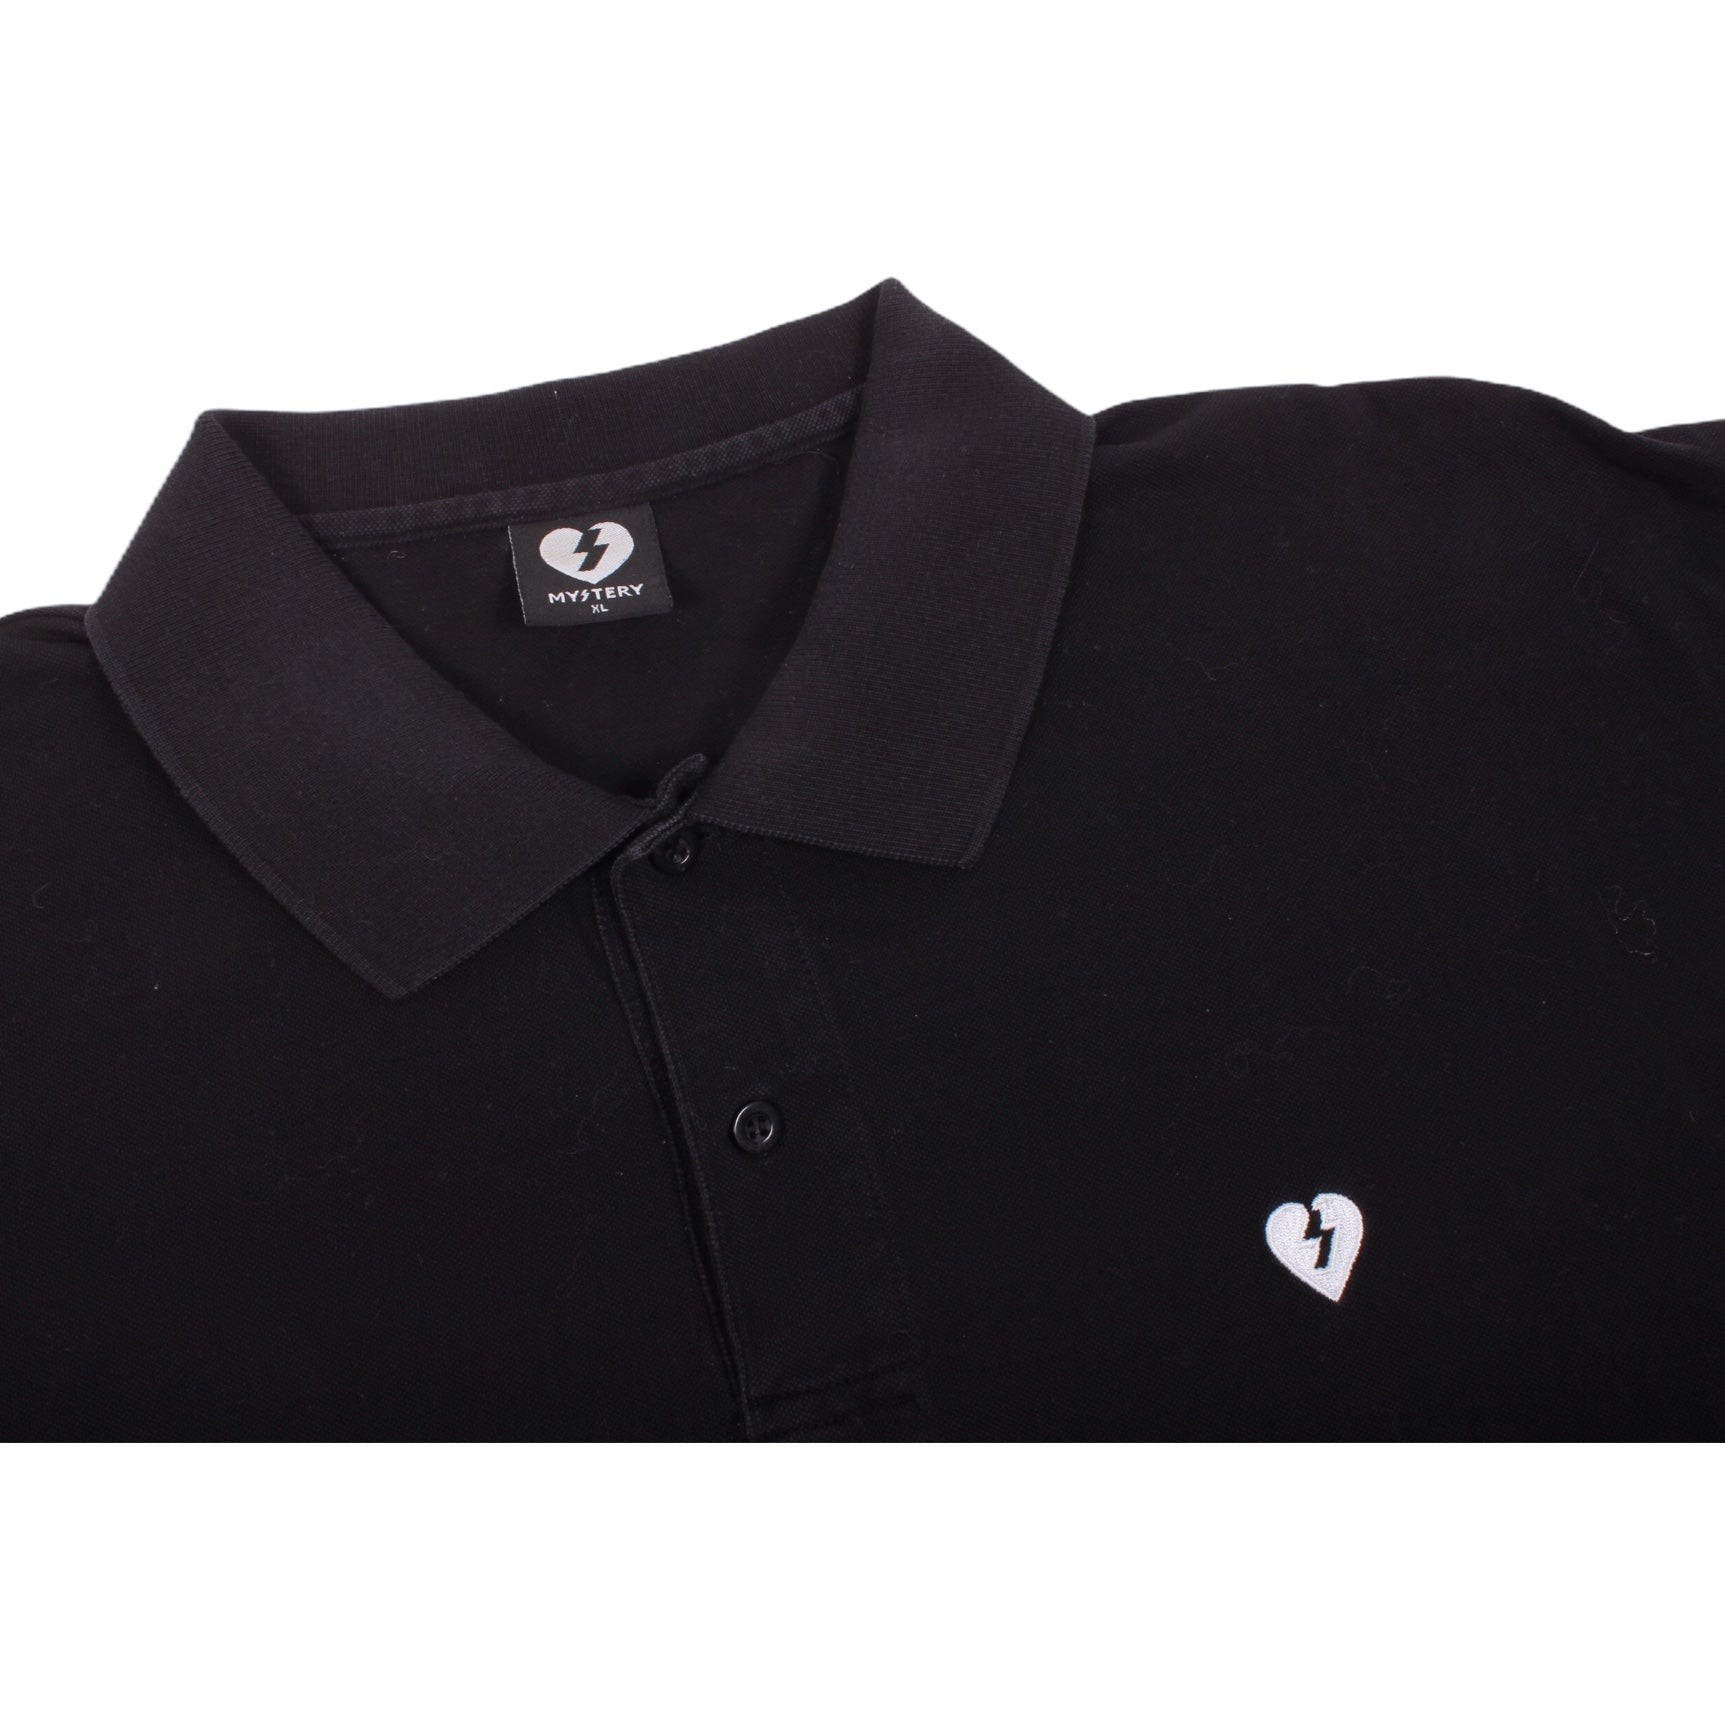 Overripe Mystery Polo Shirt Black XL (2007)